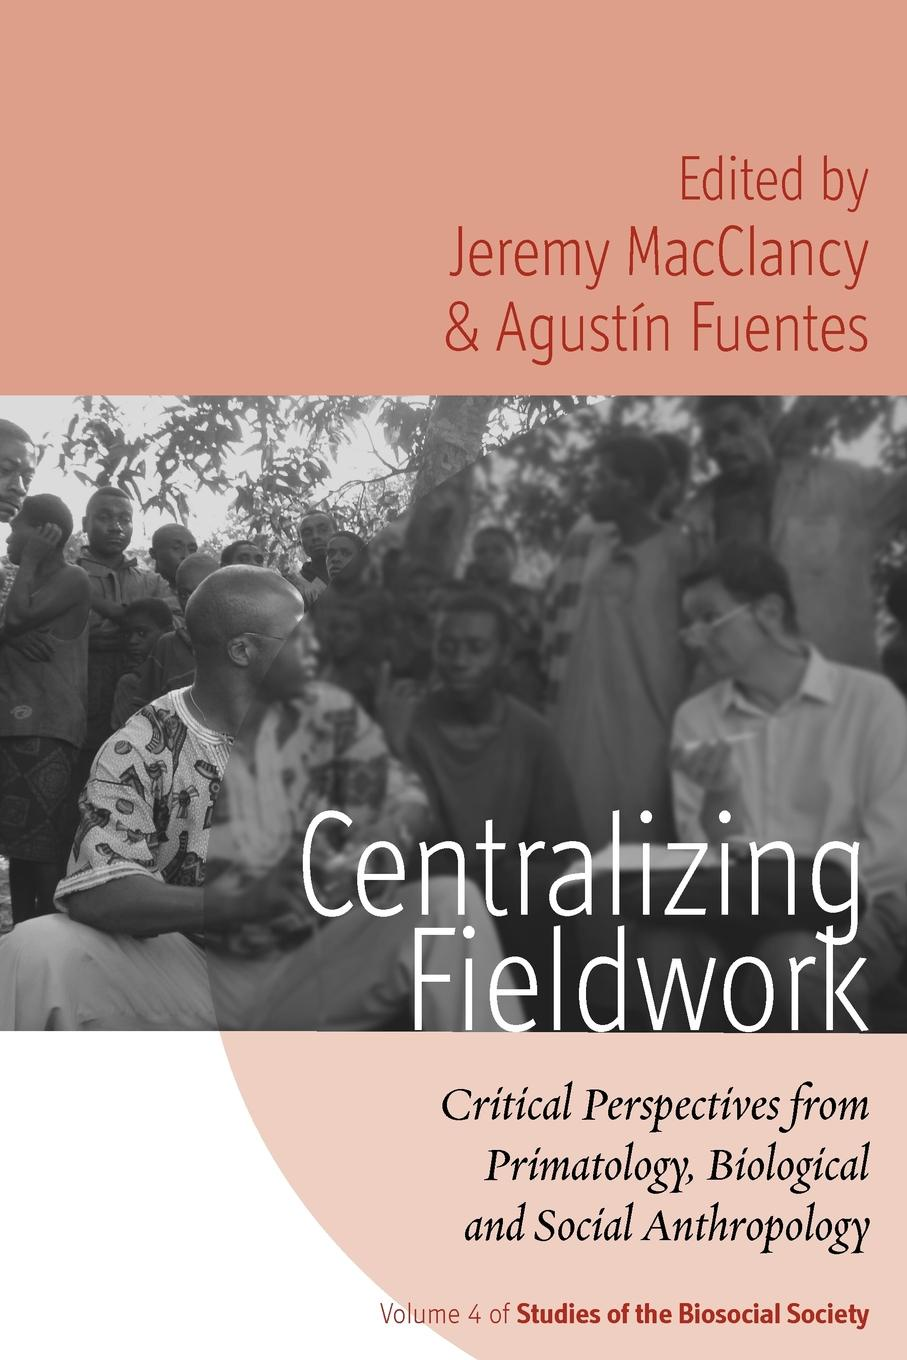 Jeremy MacClancy Centralizing Fieldwork. Critical Perspectives from Primatology, Biological and Social Anthropology jeremy macclancy anthropology in the public arena historical and contemporary contexts